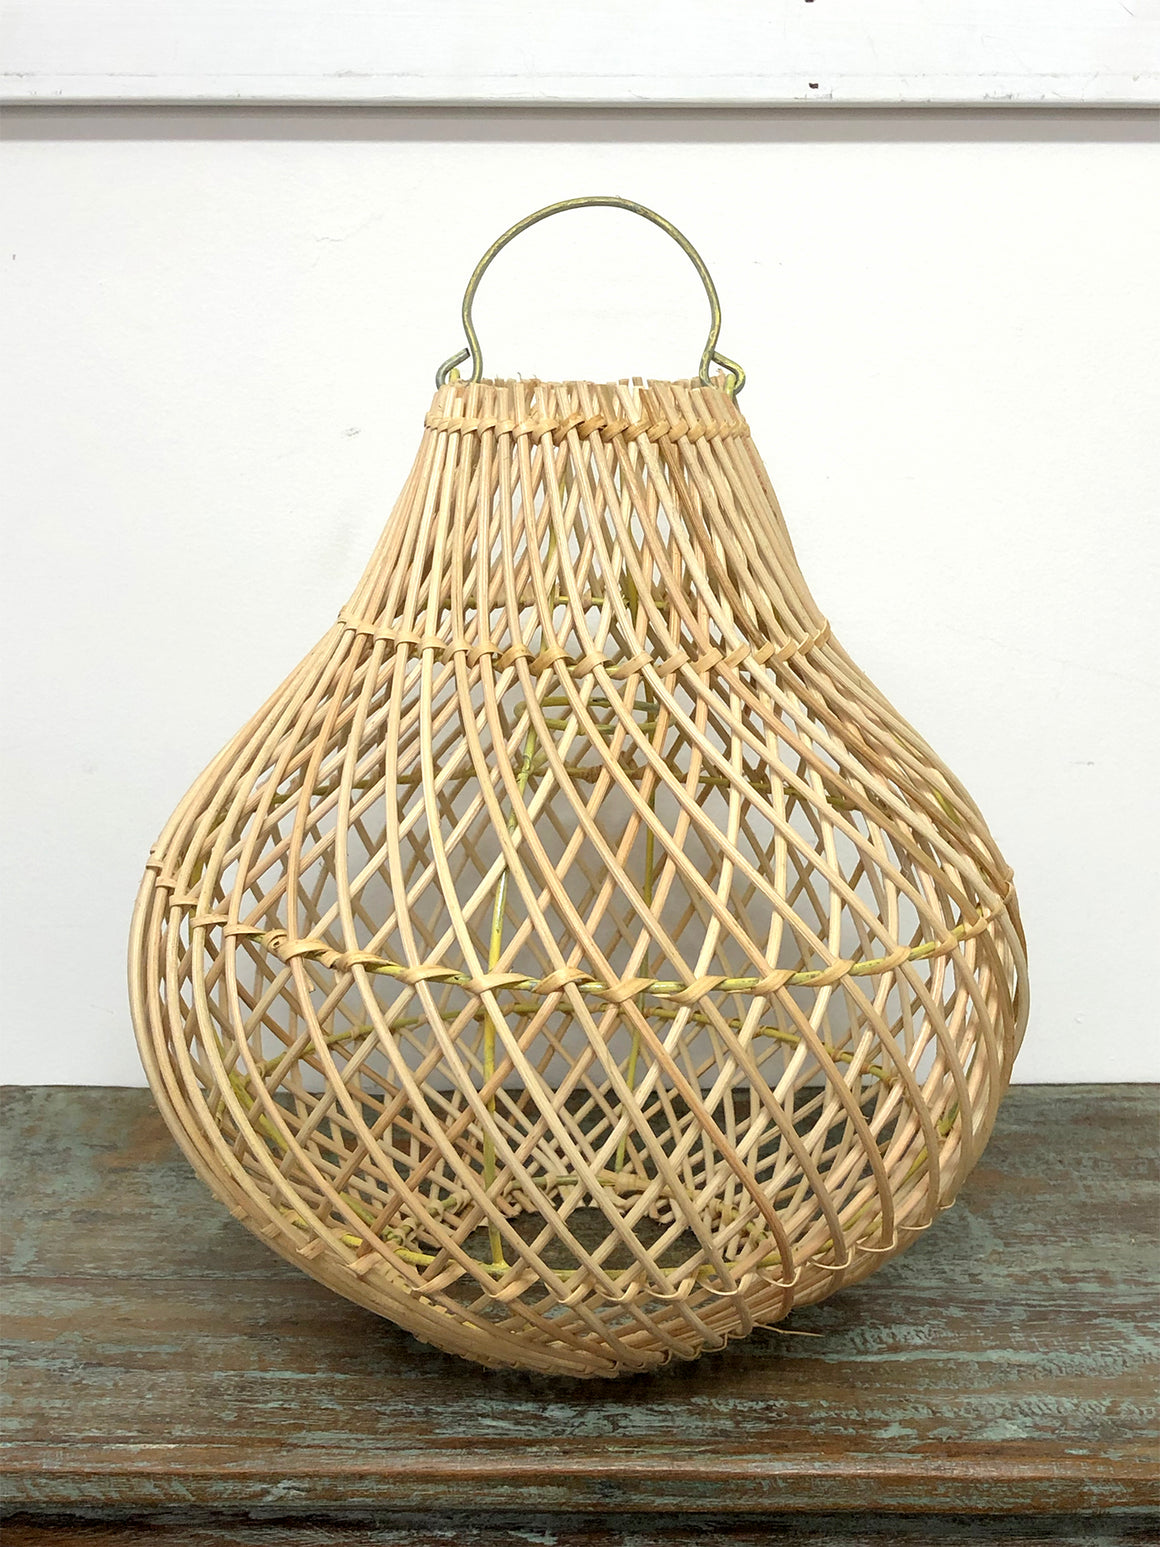 Wicker pear light shade